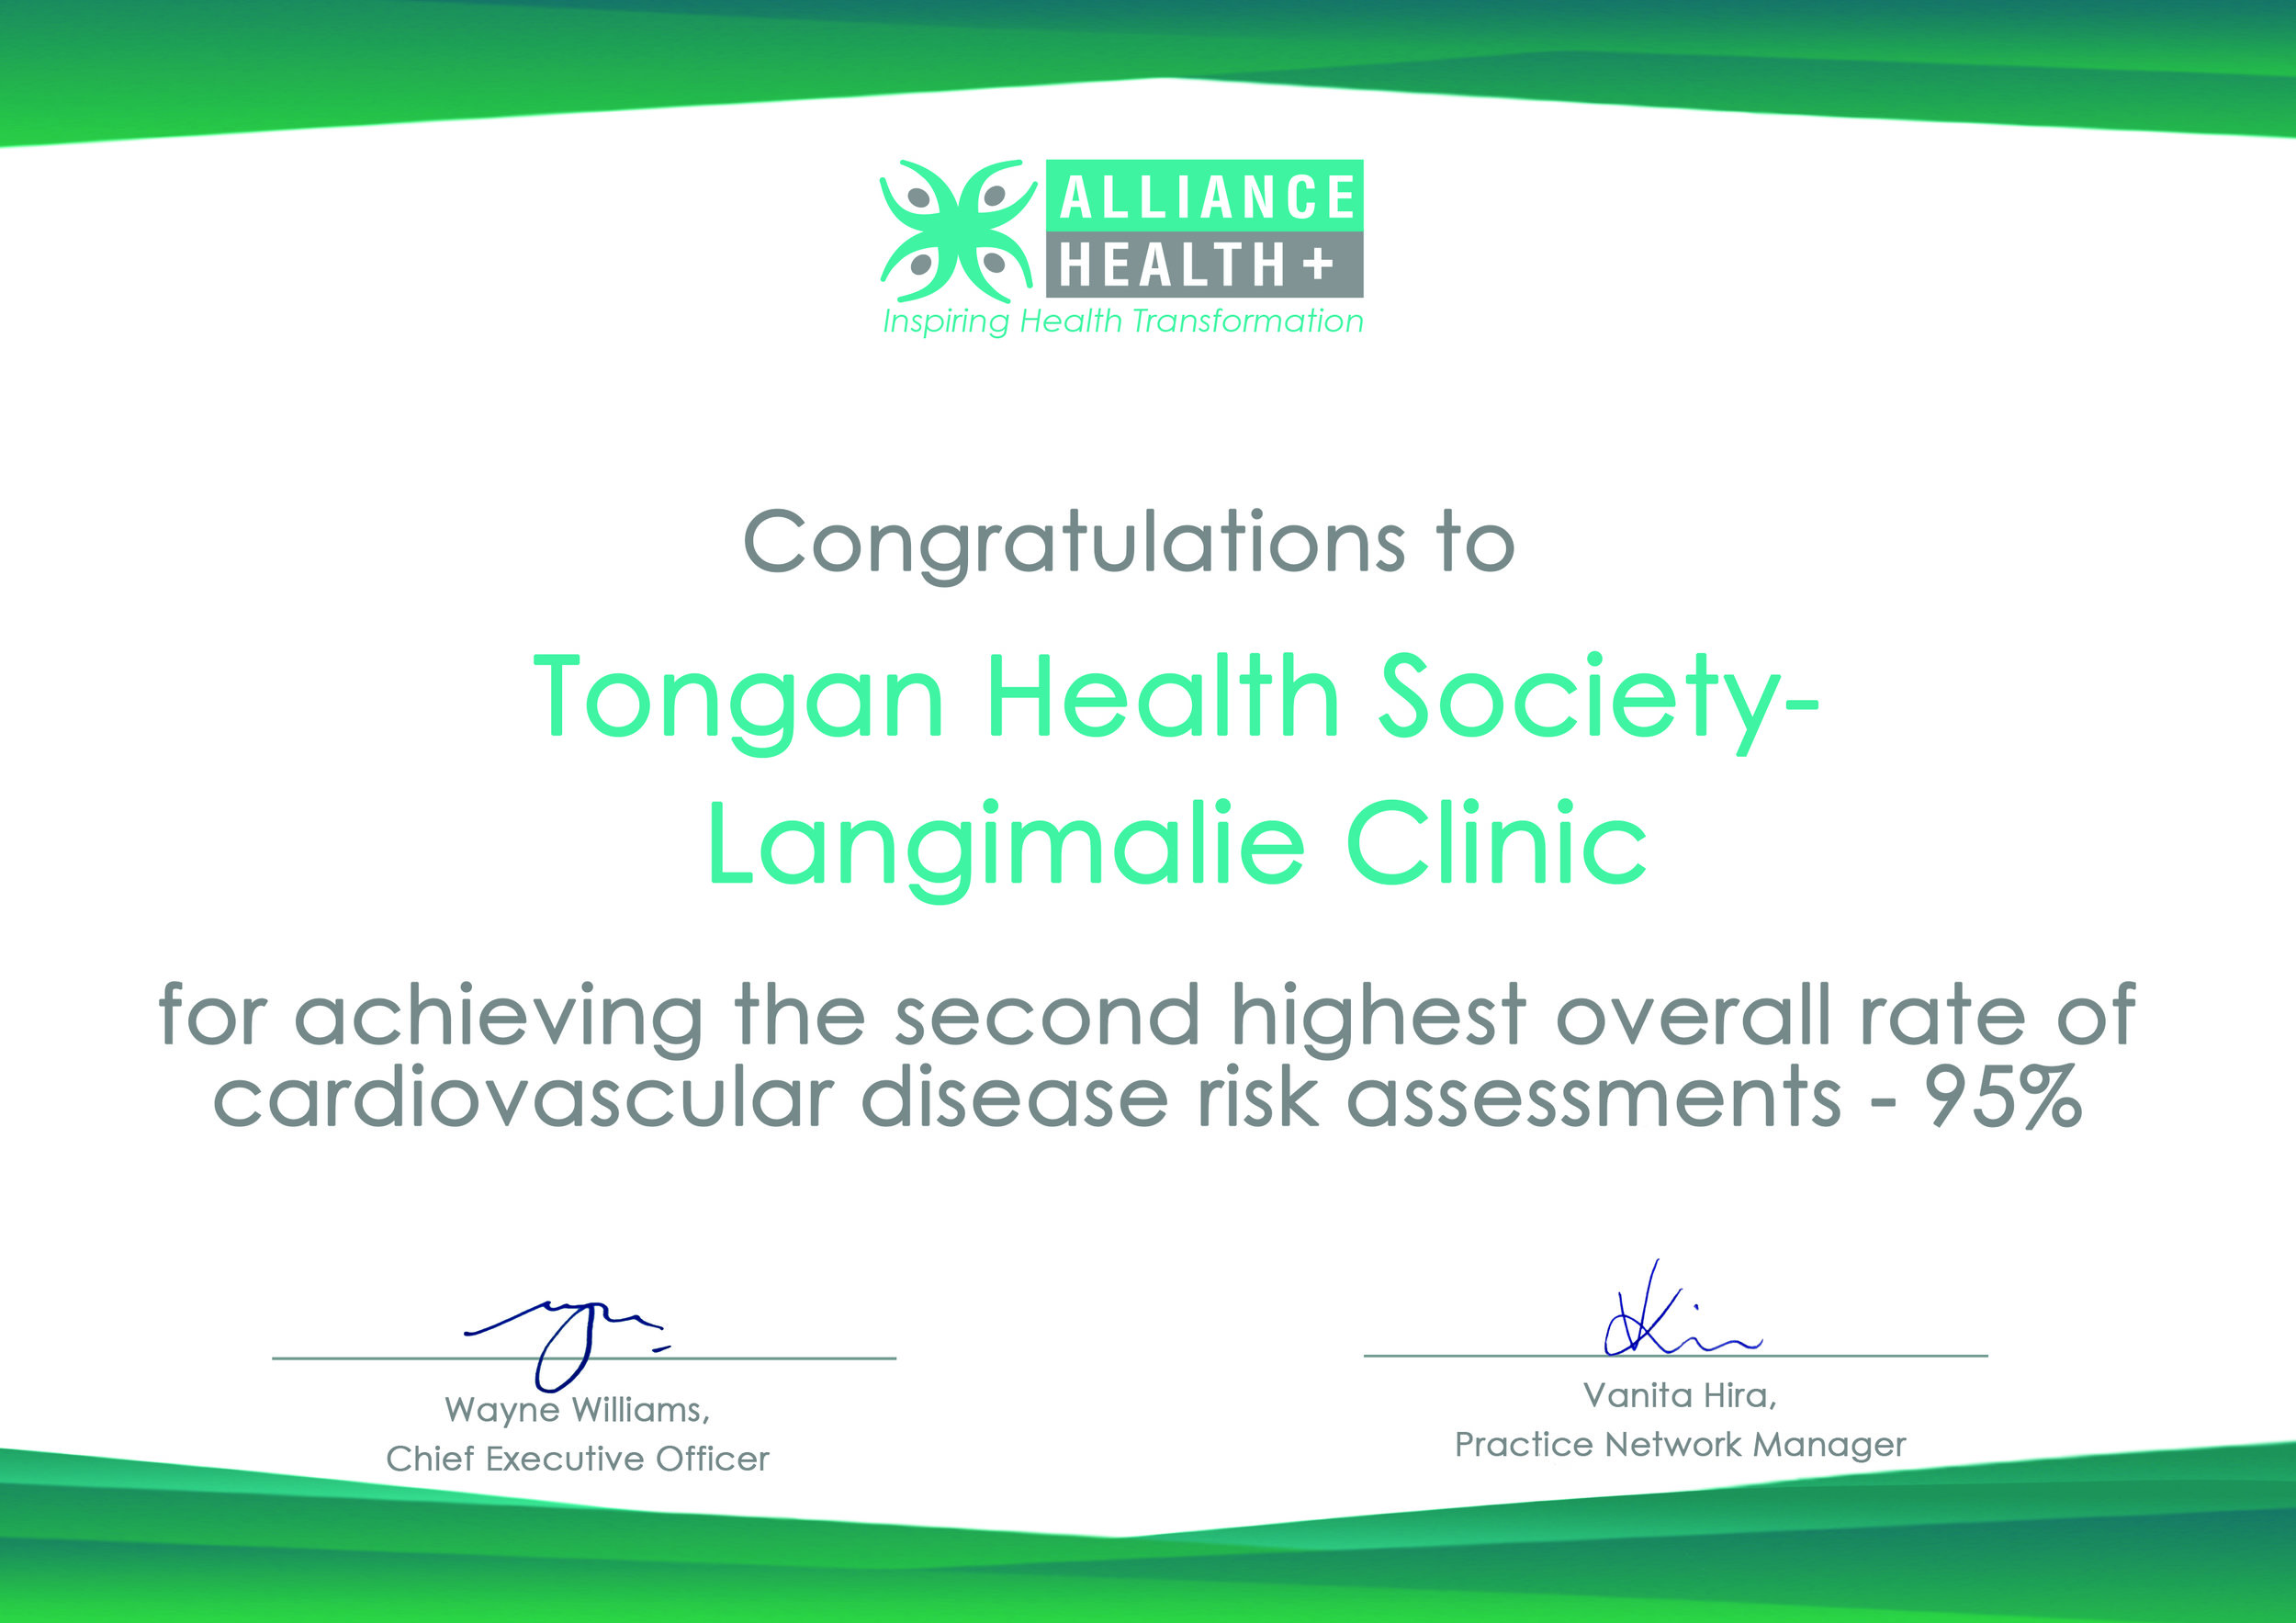 Alliance Health Plus - For achieving the second highest overall rate of cardiovascular disease risk assessments - 95%.